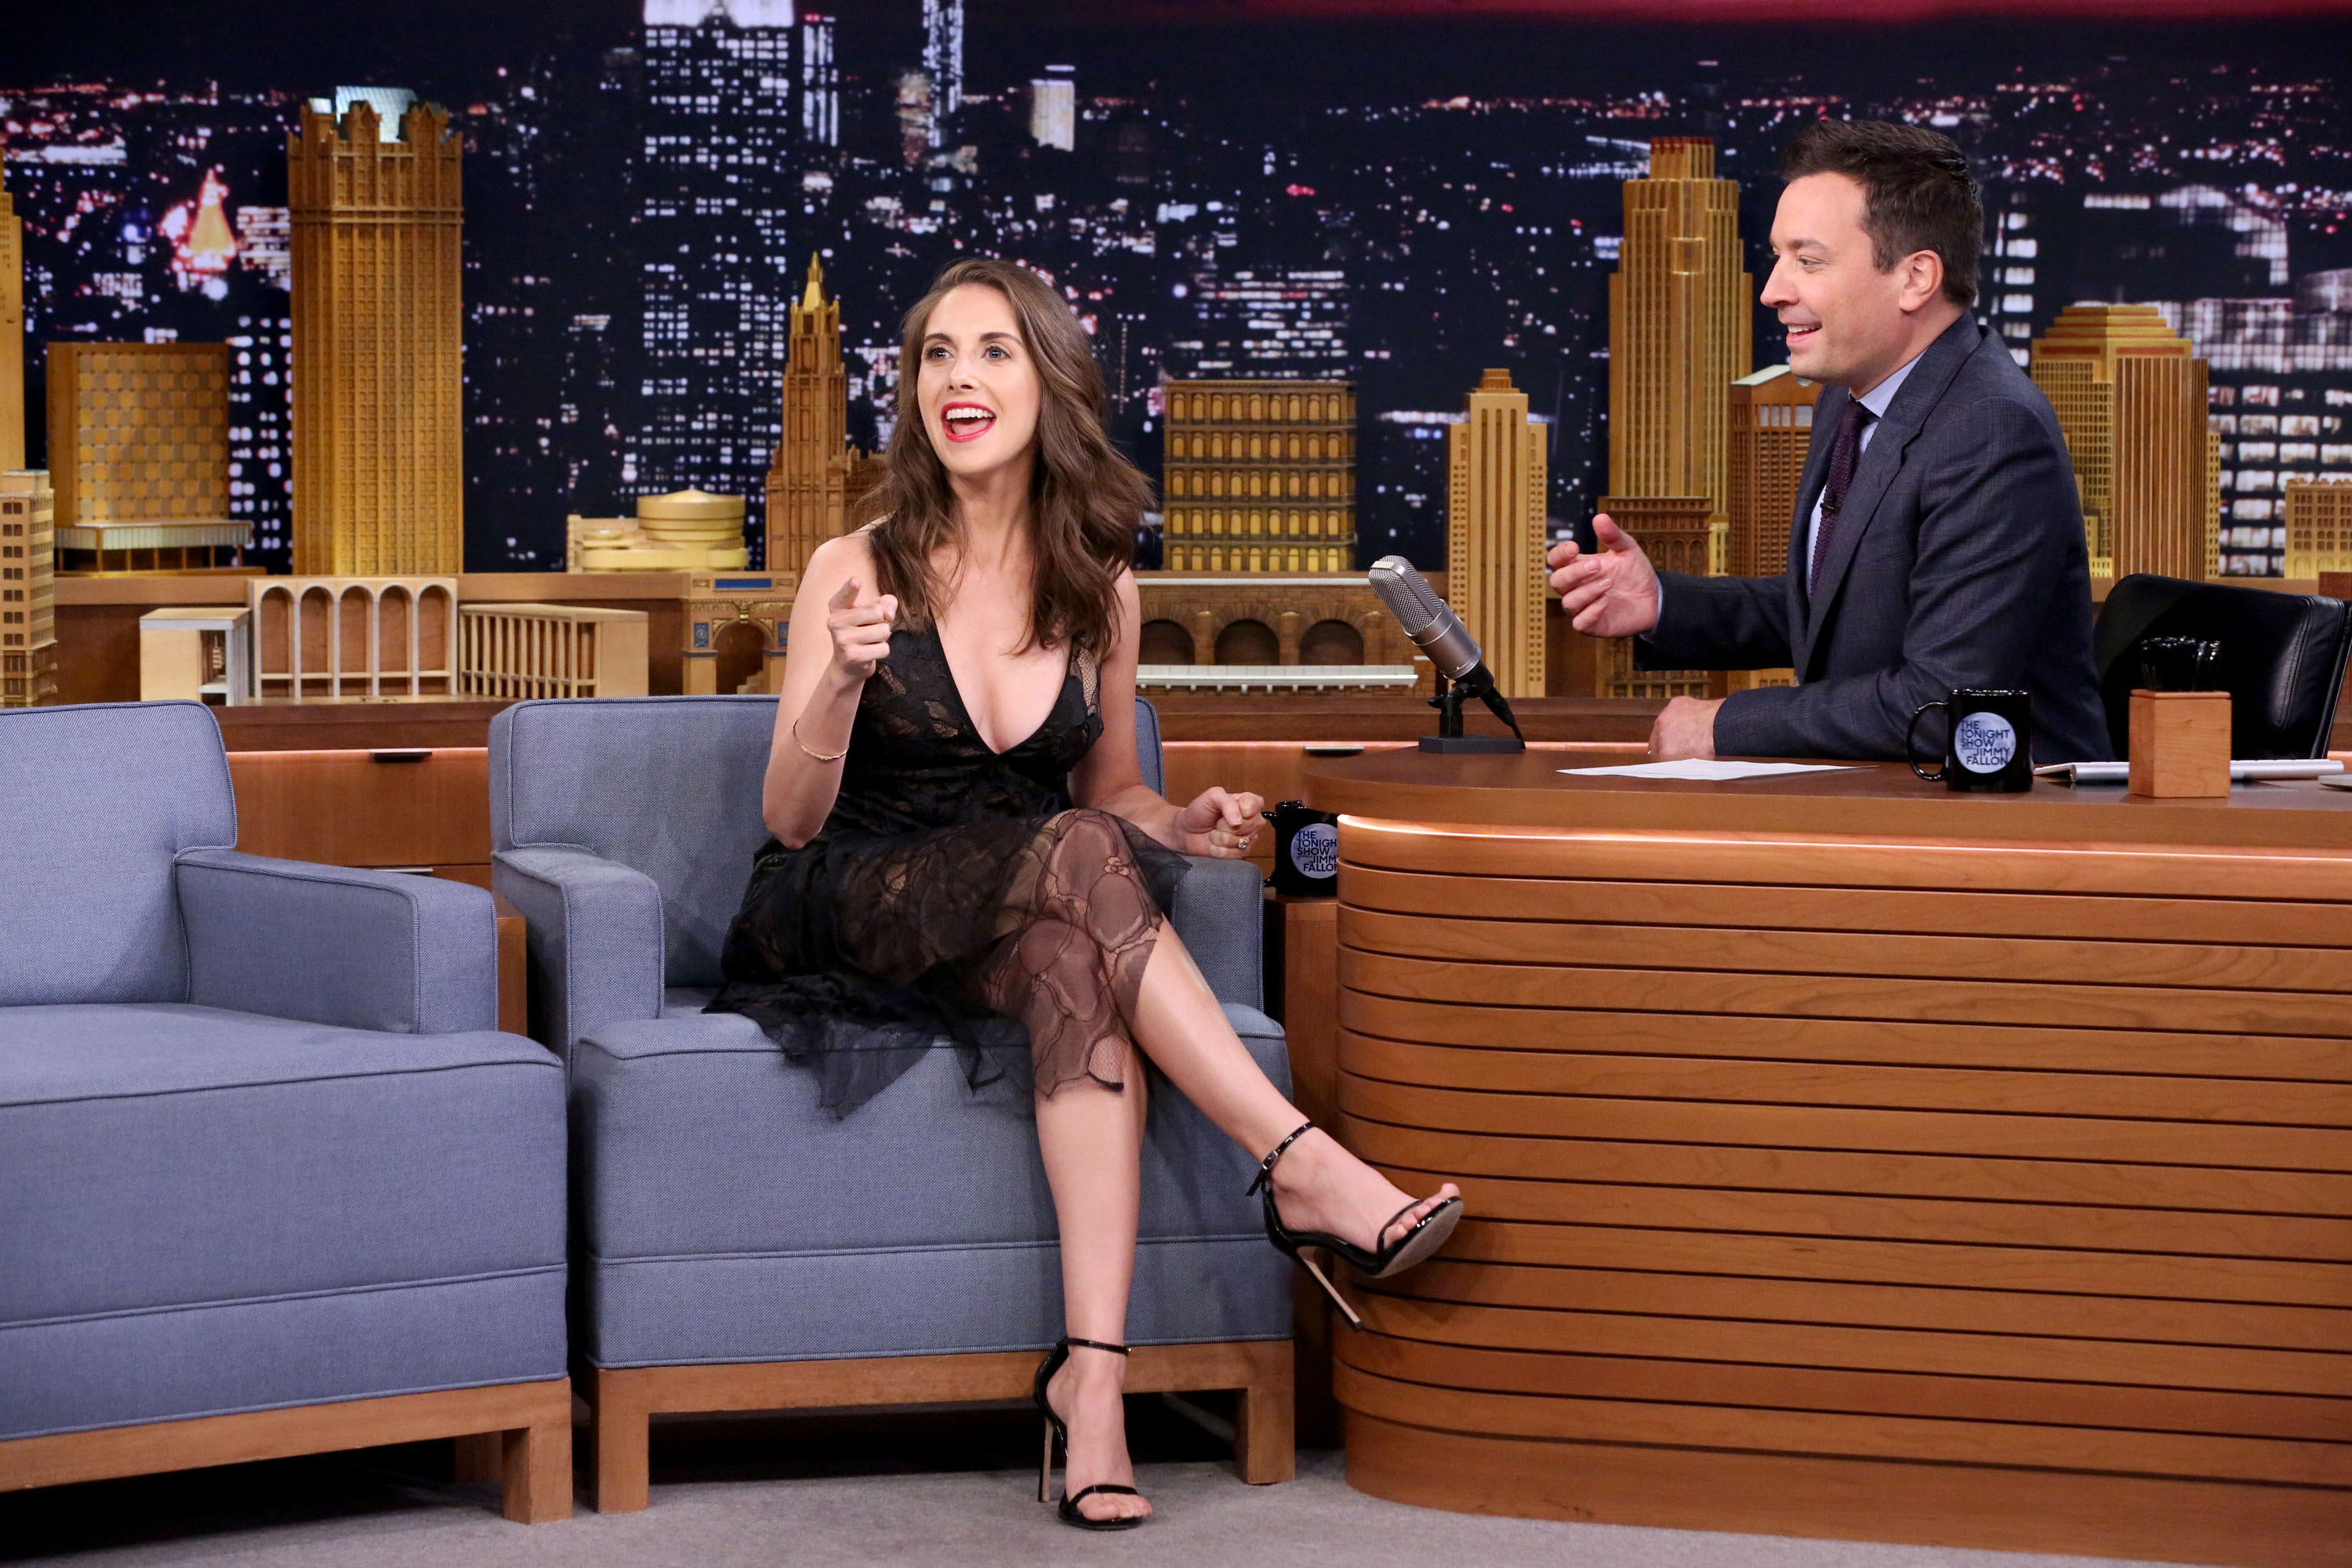 Alison Brie during an interview with host Jimmy Fallon on Sept. 4, 2015.